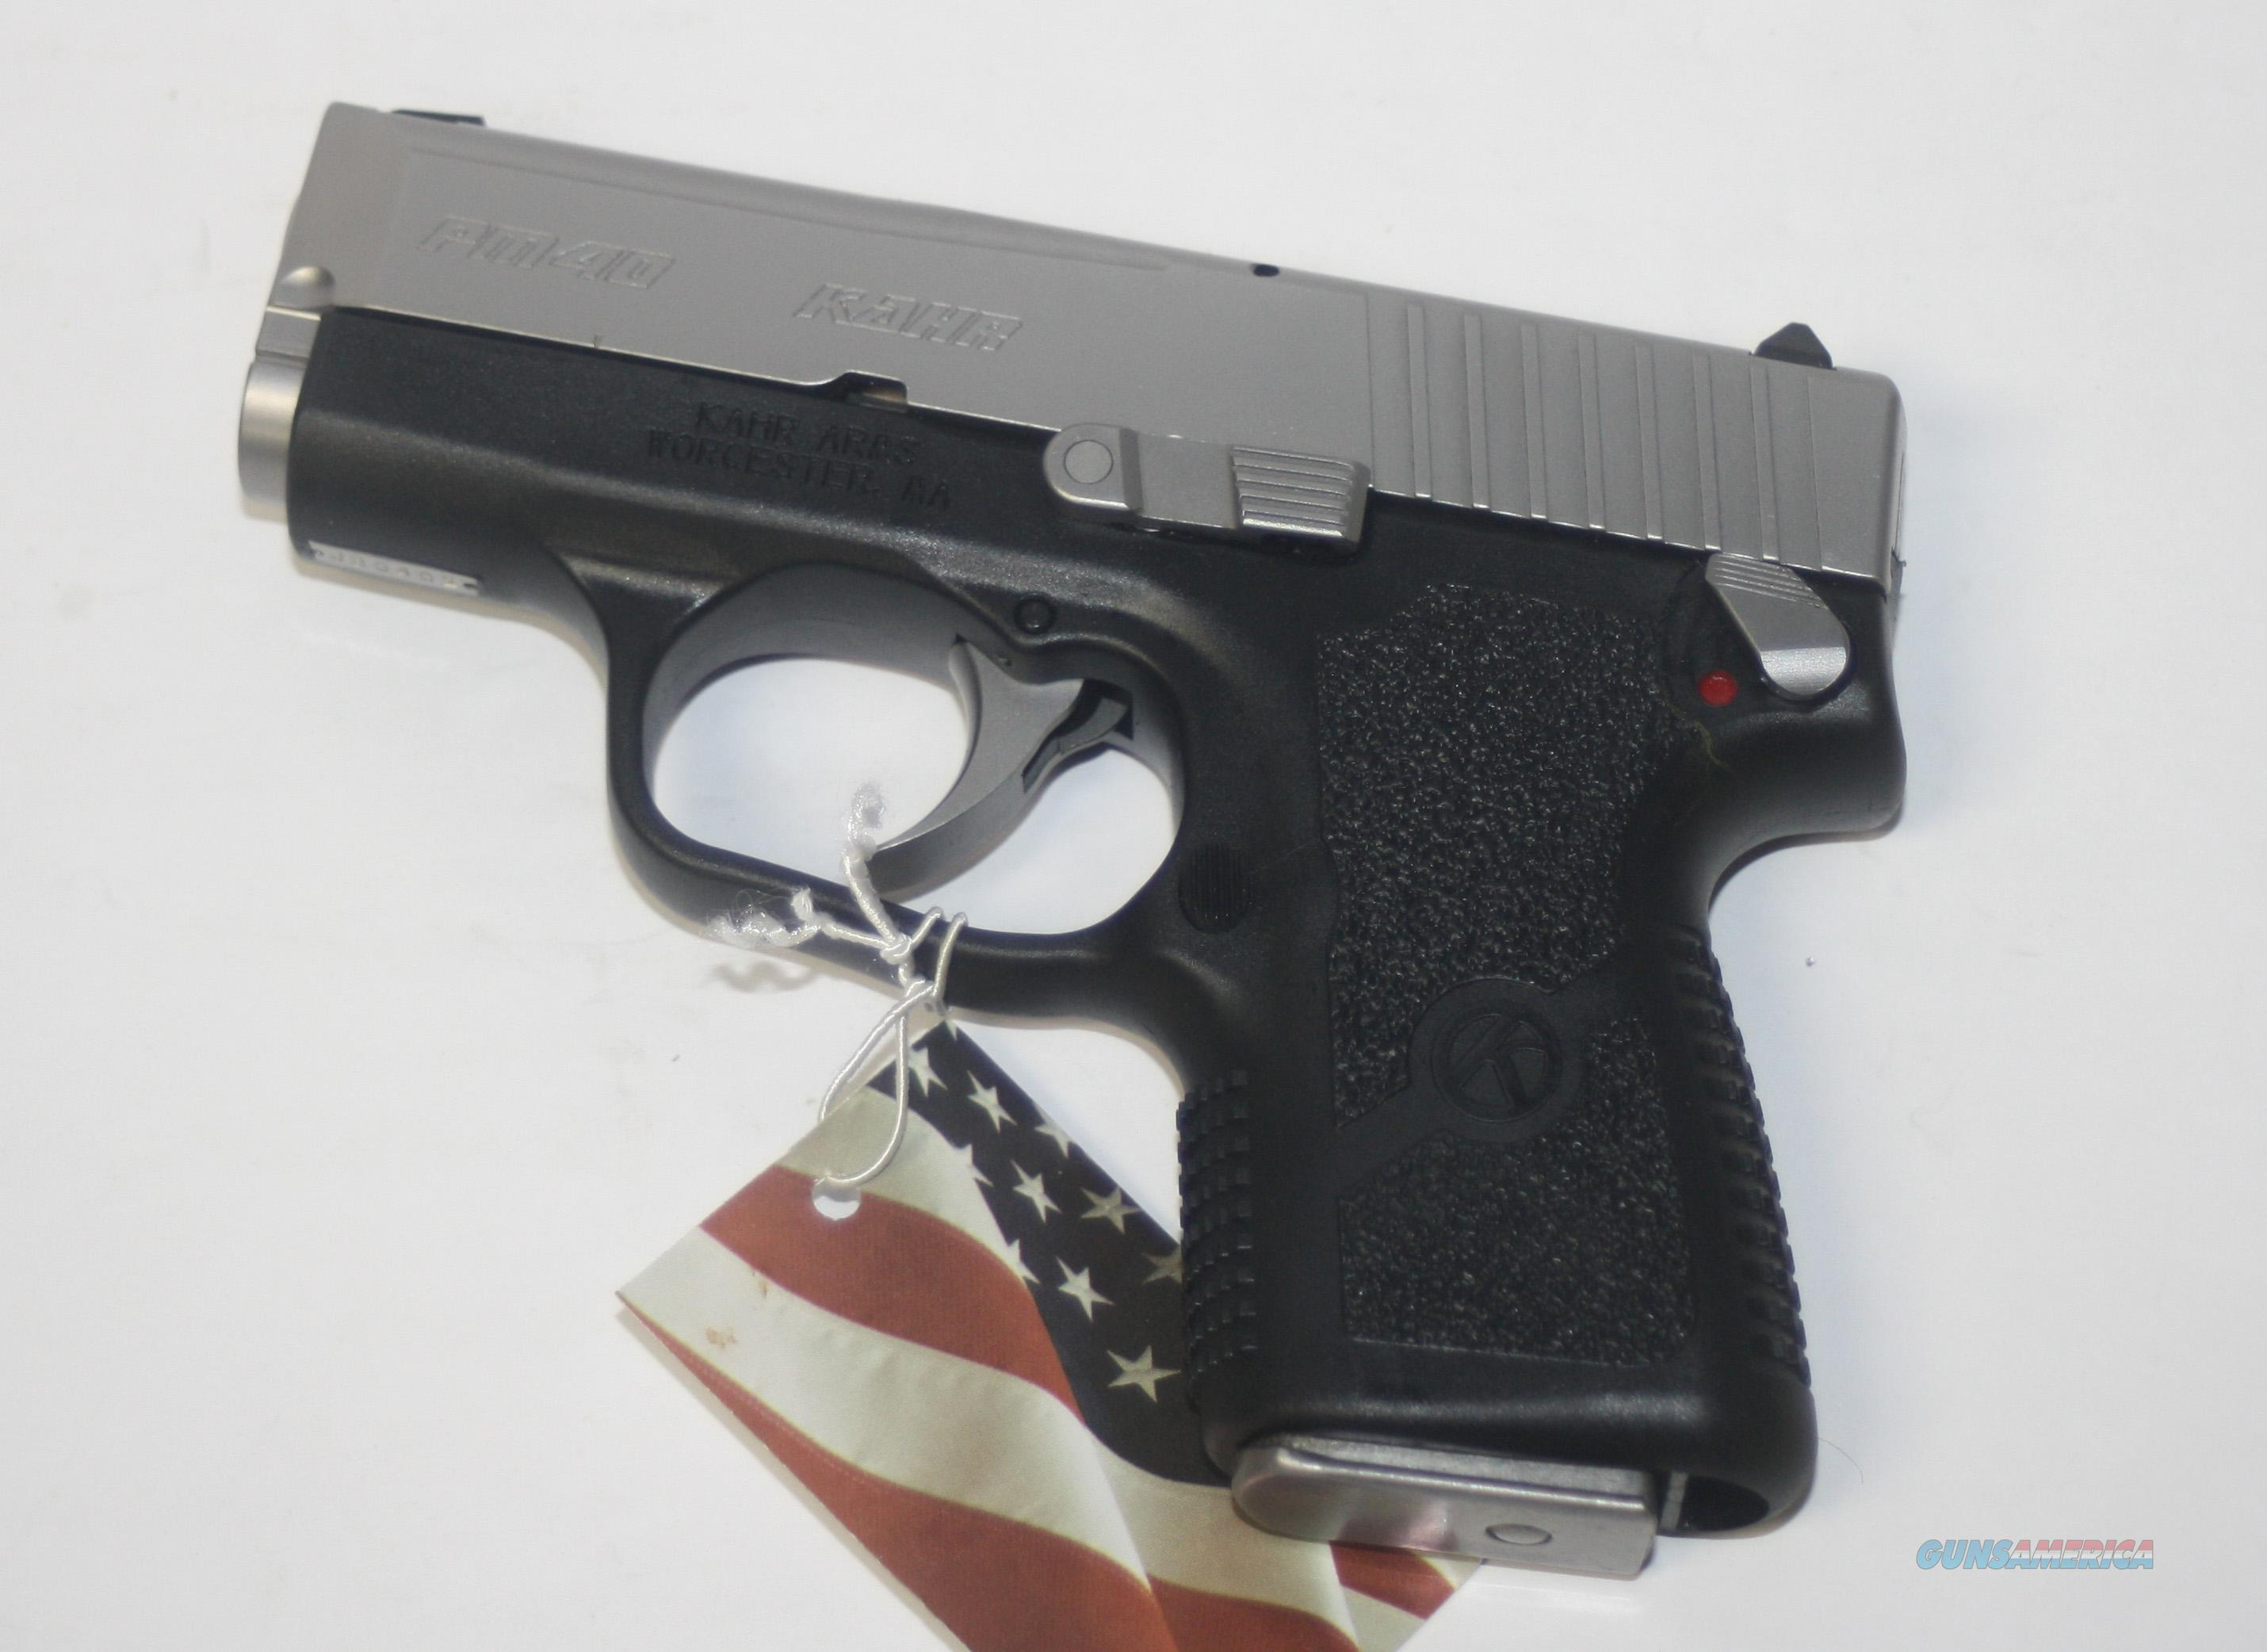 "KHAR ARMS PM4143 MODEL PM40 WITH EXTERNAL SAFETY & LCI 40 S&W 3"" CONCEAL CARRY NEW IN BOX  Guns > Pistols > Kahr Pistols"